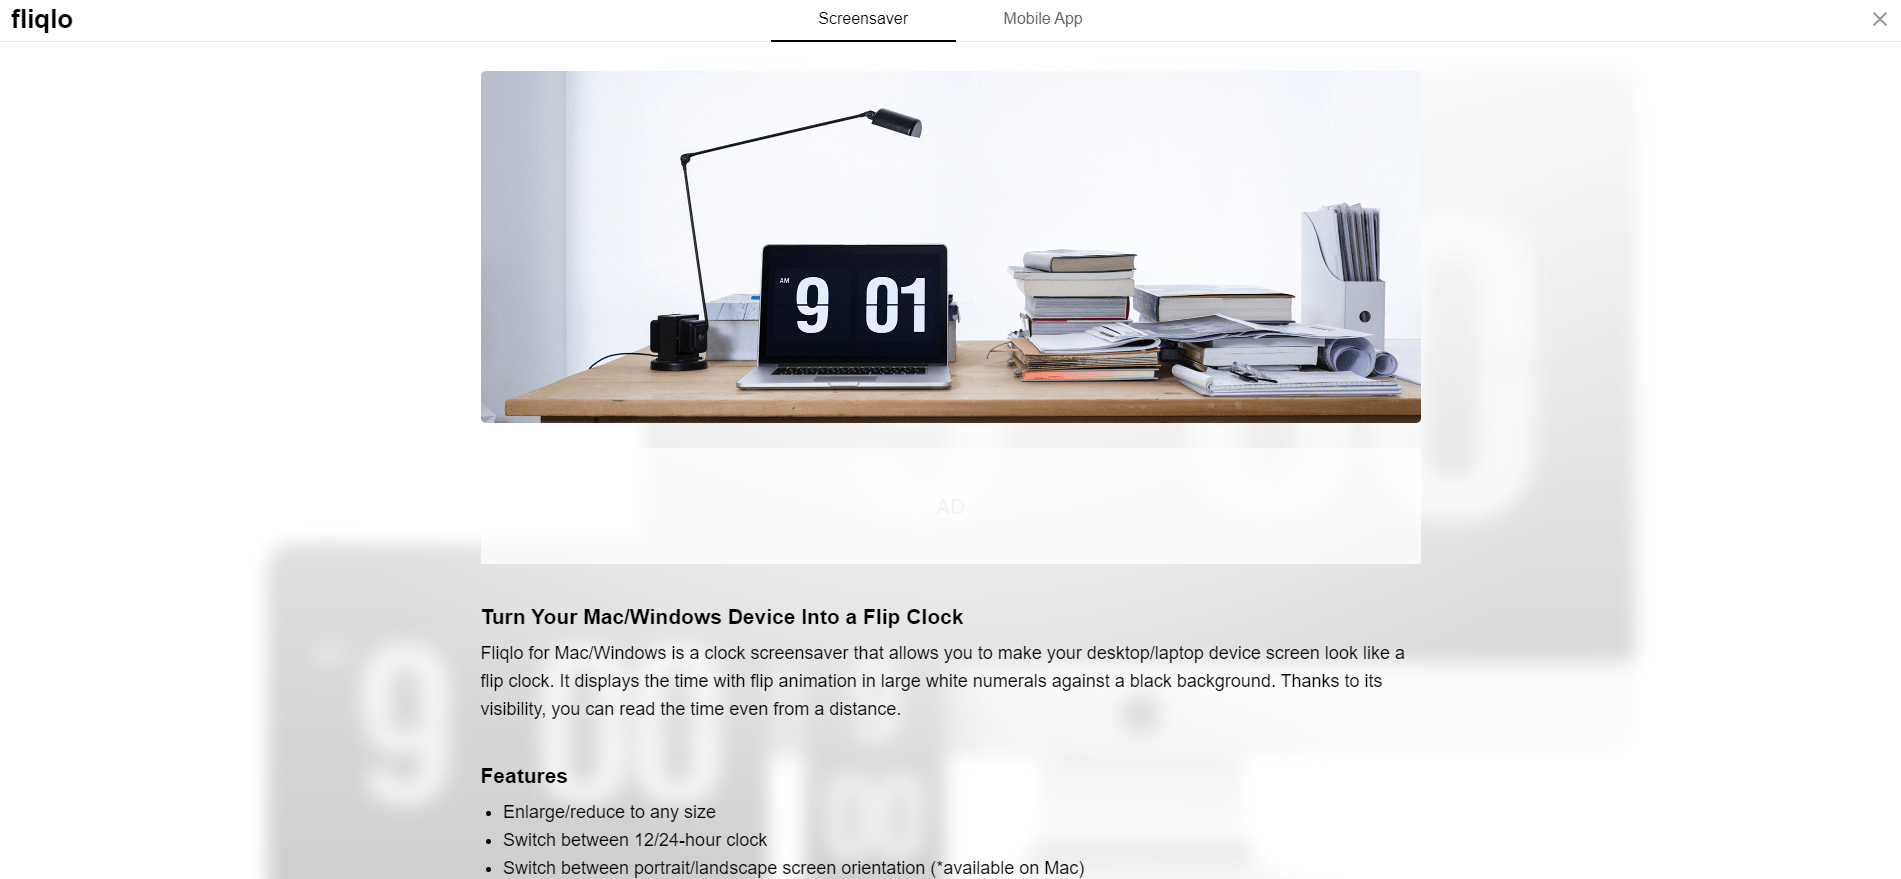 Flip Clock: Select screensaver or Mobile App